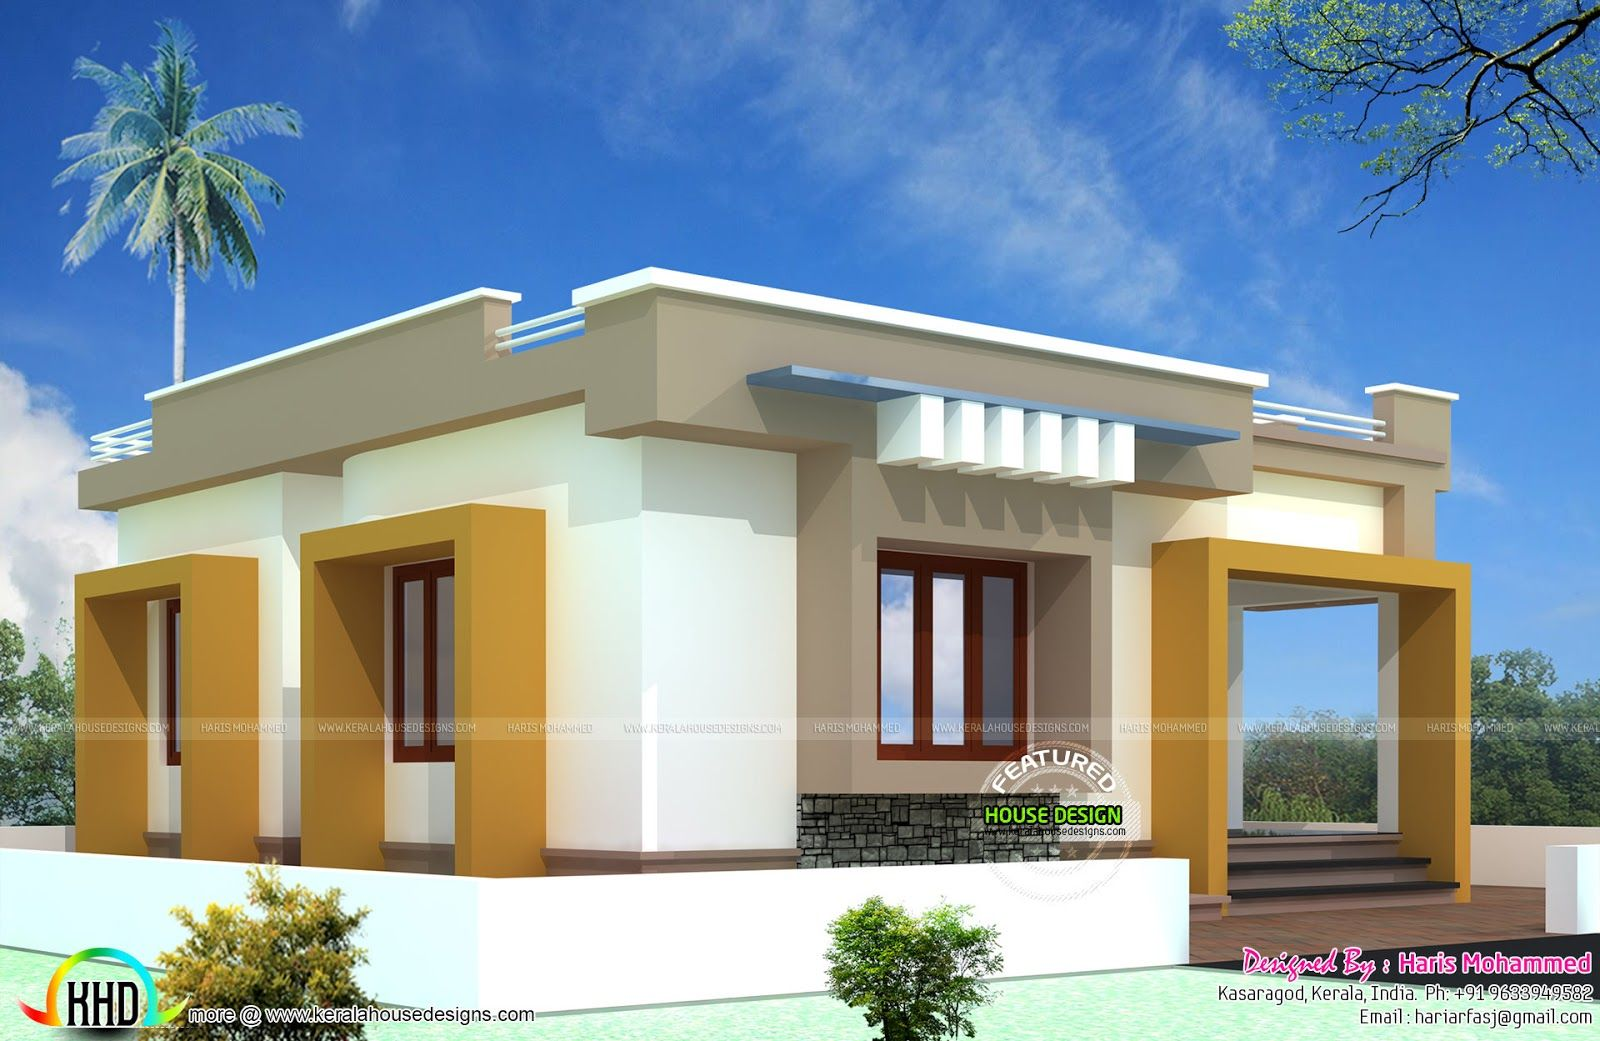 10 Lakhs Budget House Plan In 2019 House Design Pinterest